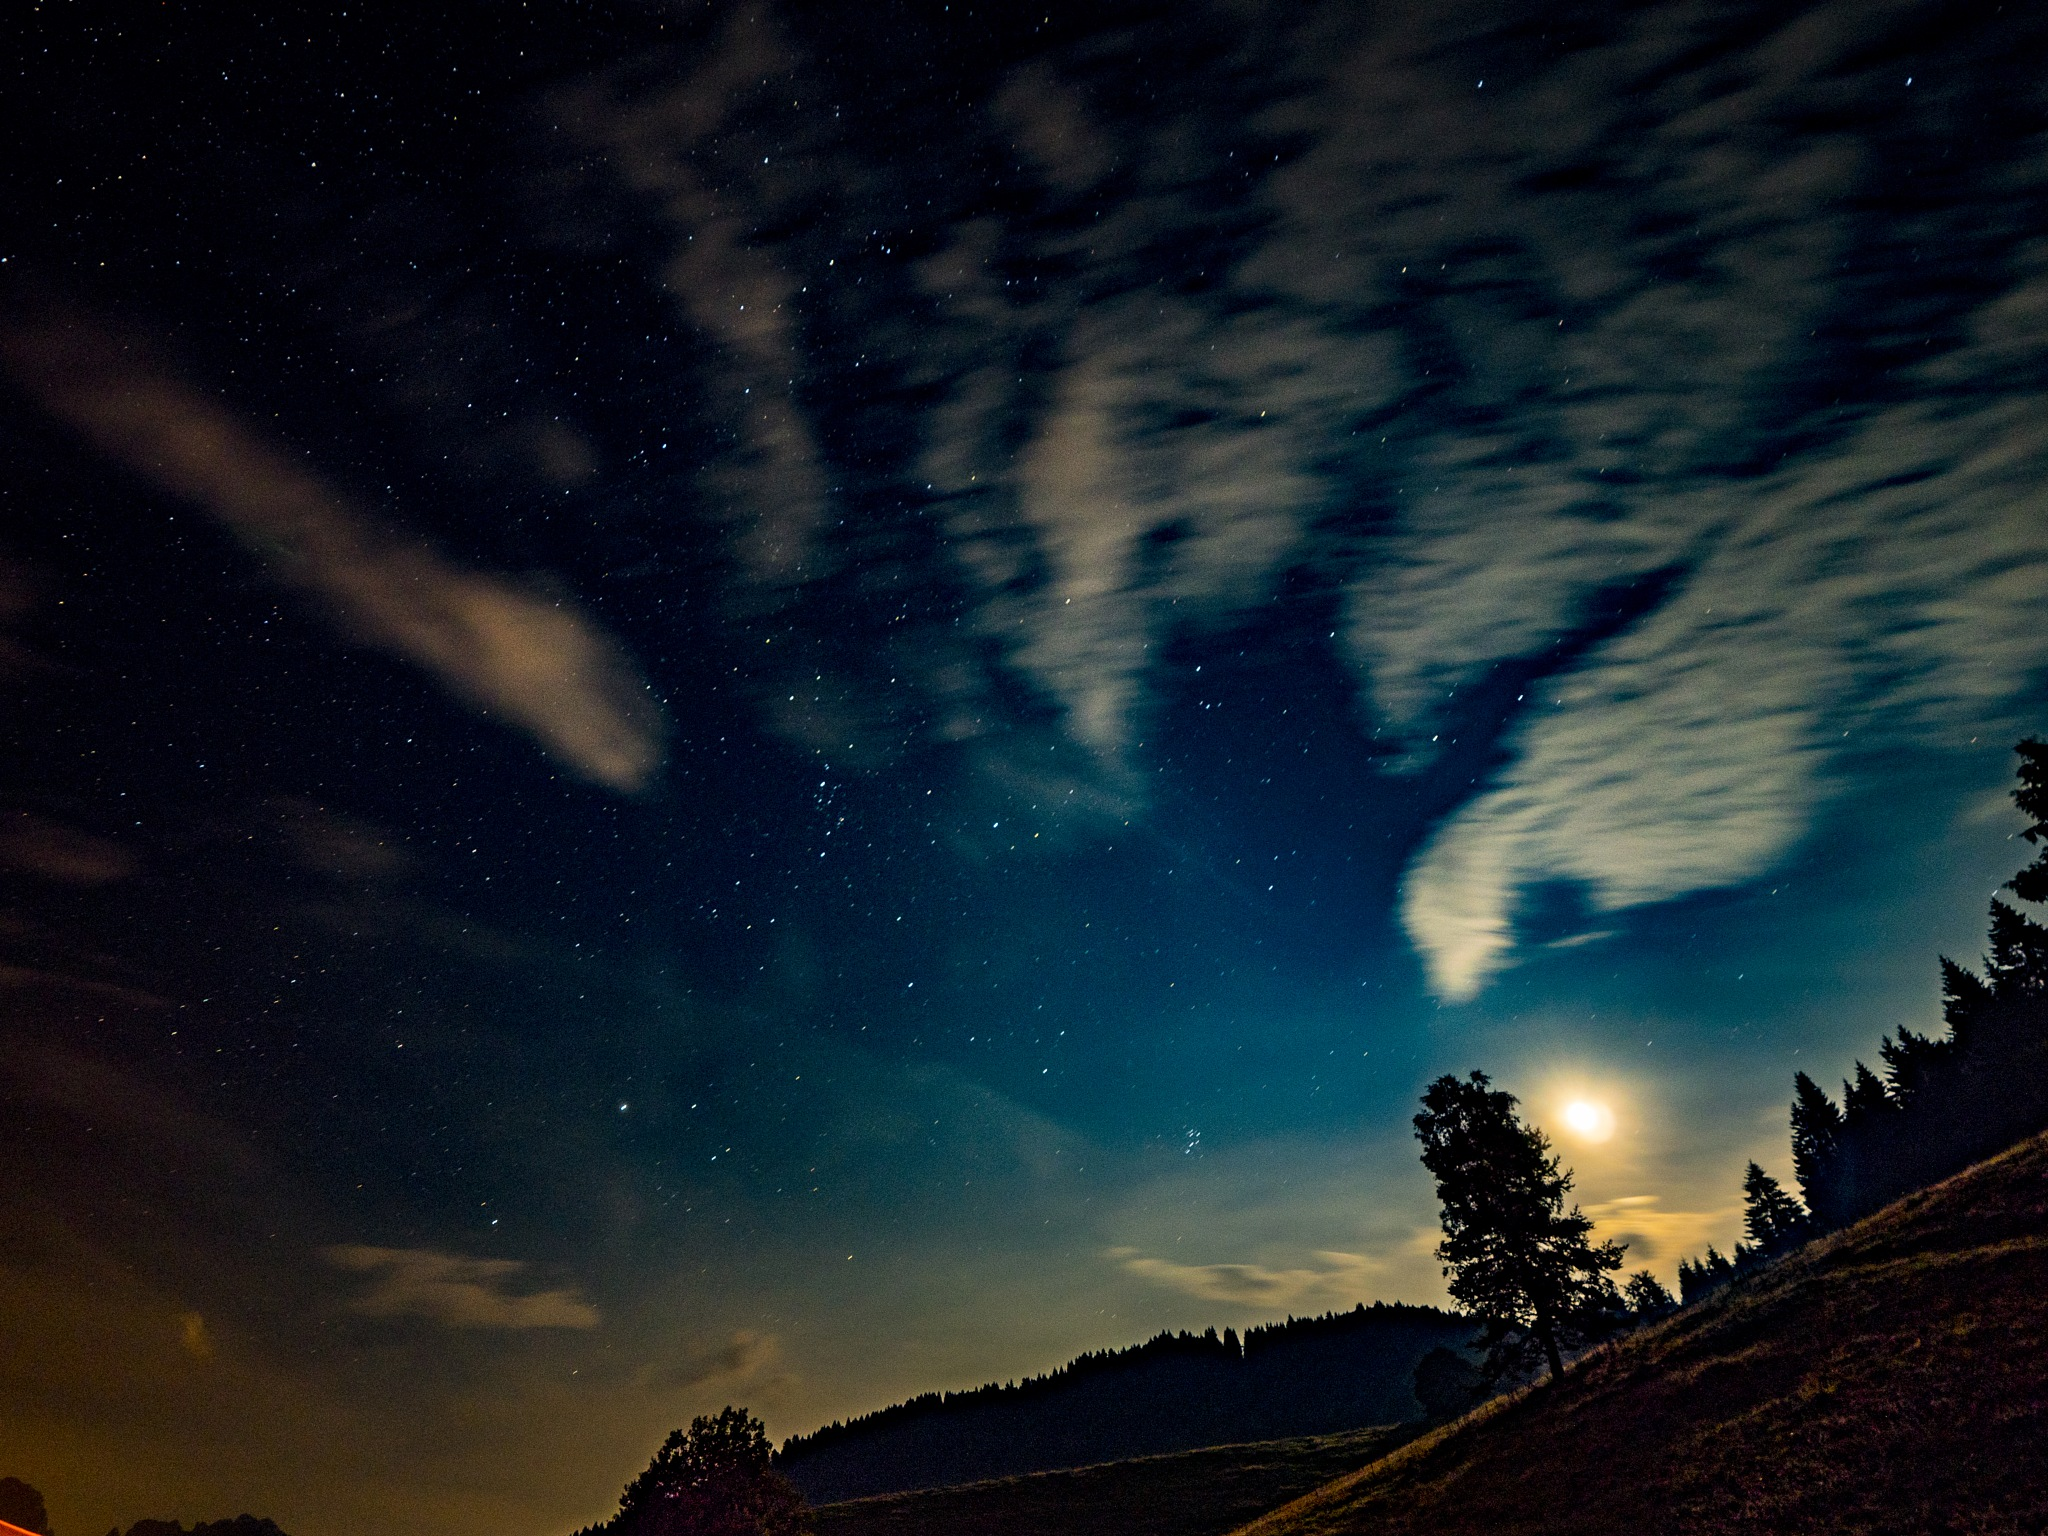 Stars from Trentino by brugnolo claudio